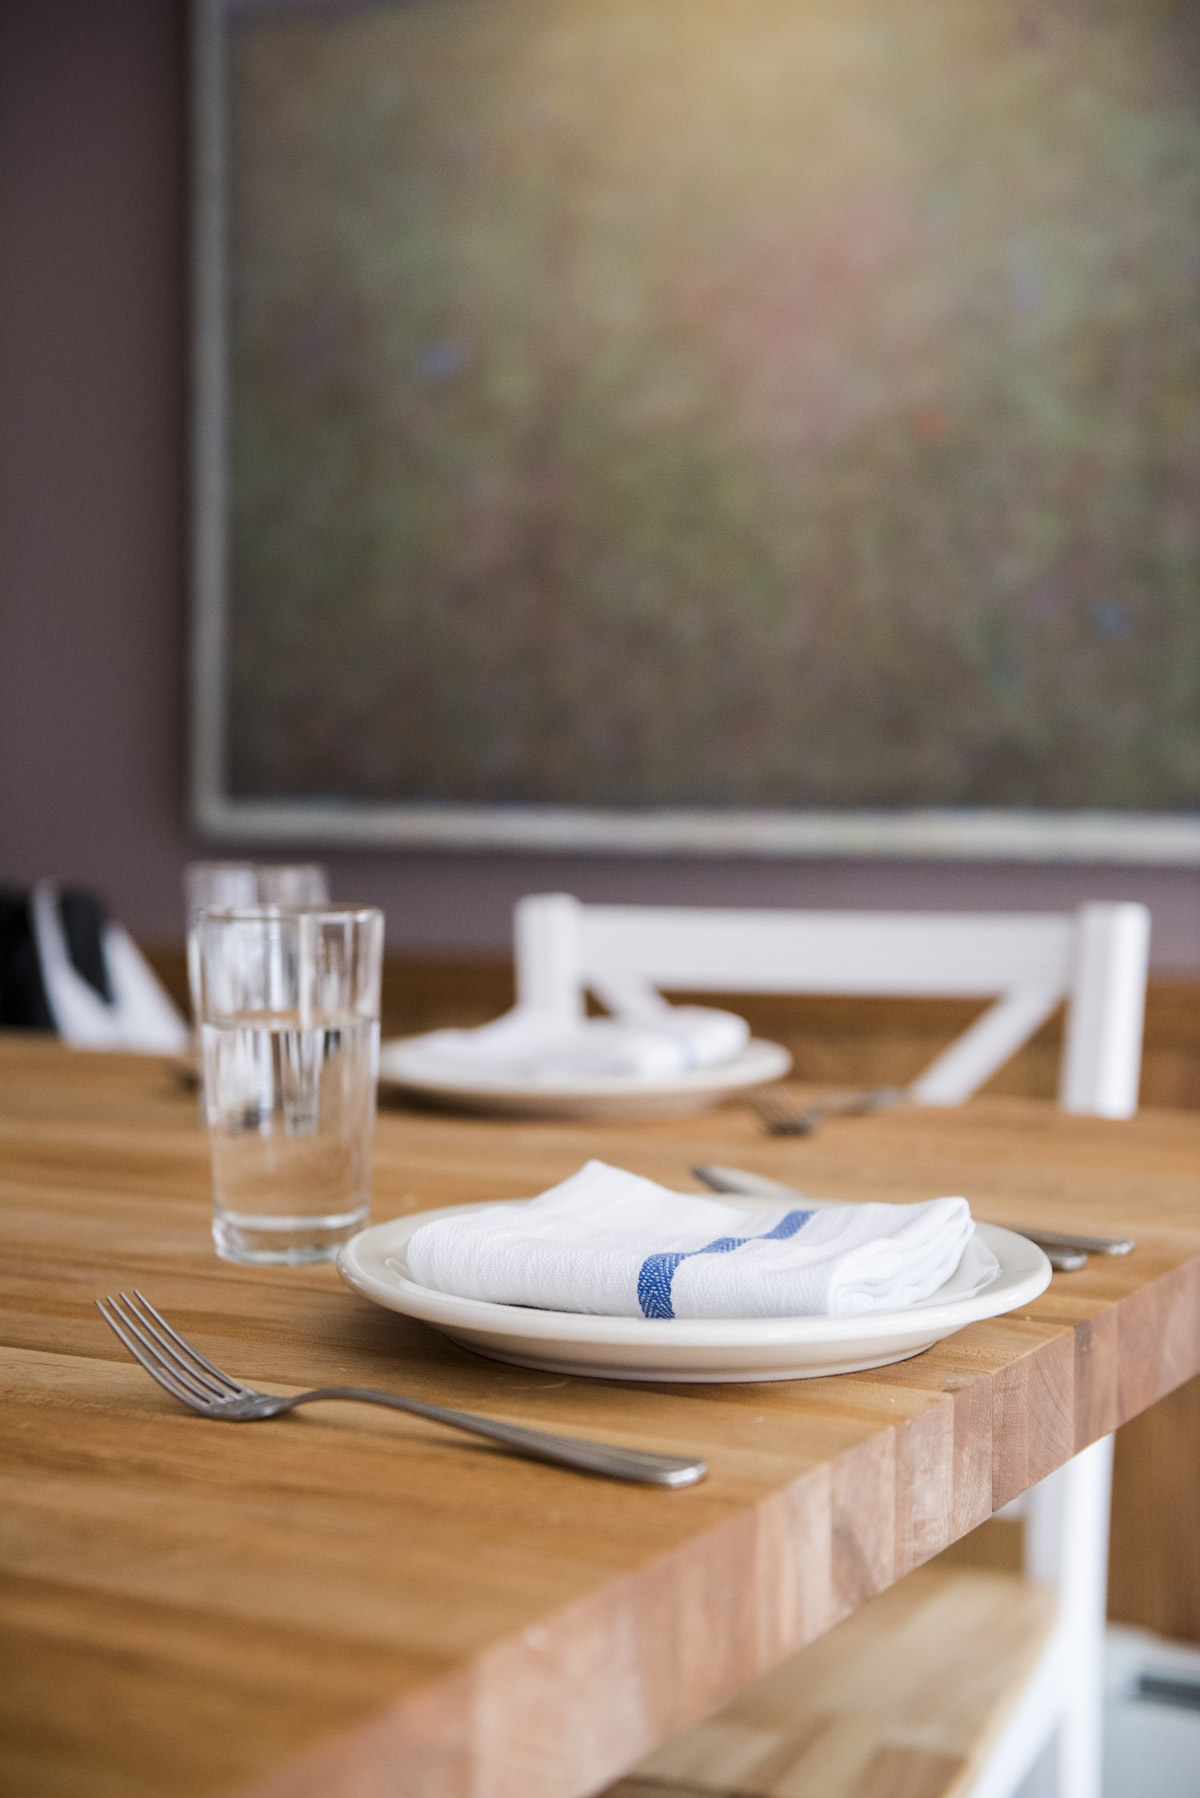 lightwoodendiningtable-with-silverware-table-settings-and-glass-cup.jpg